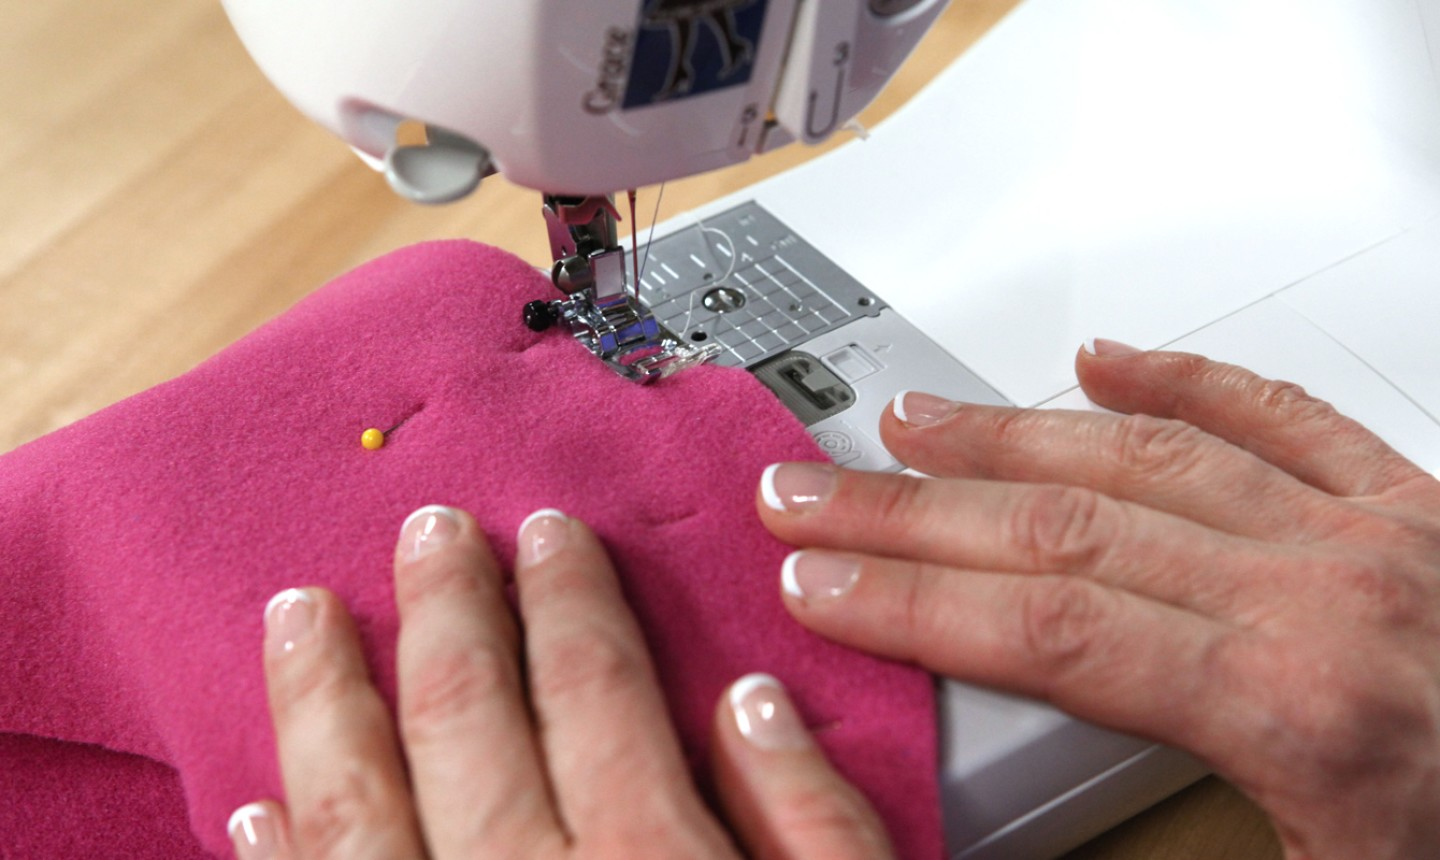 Sewing fleece on sewing machine